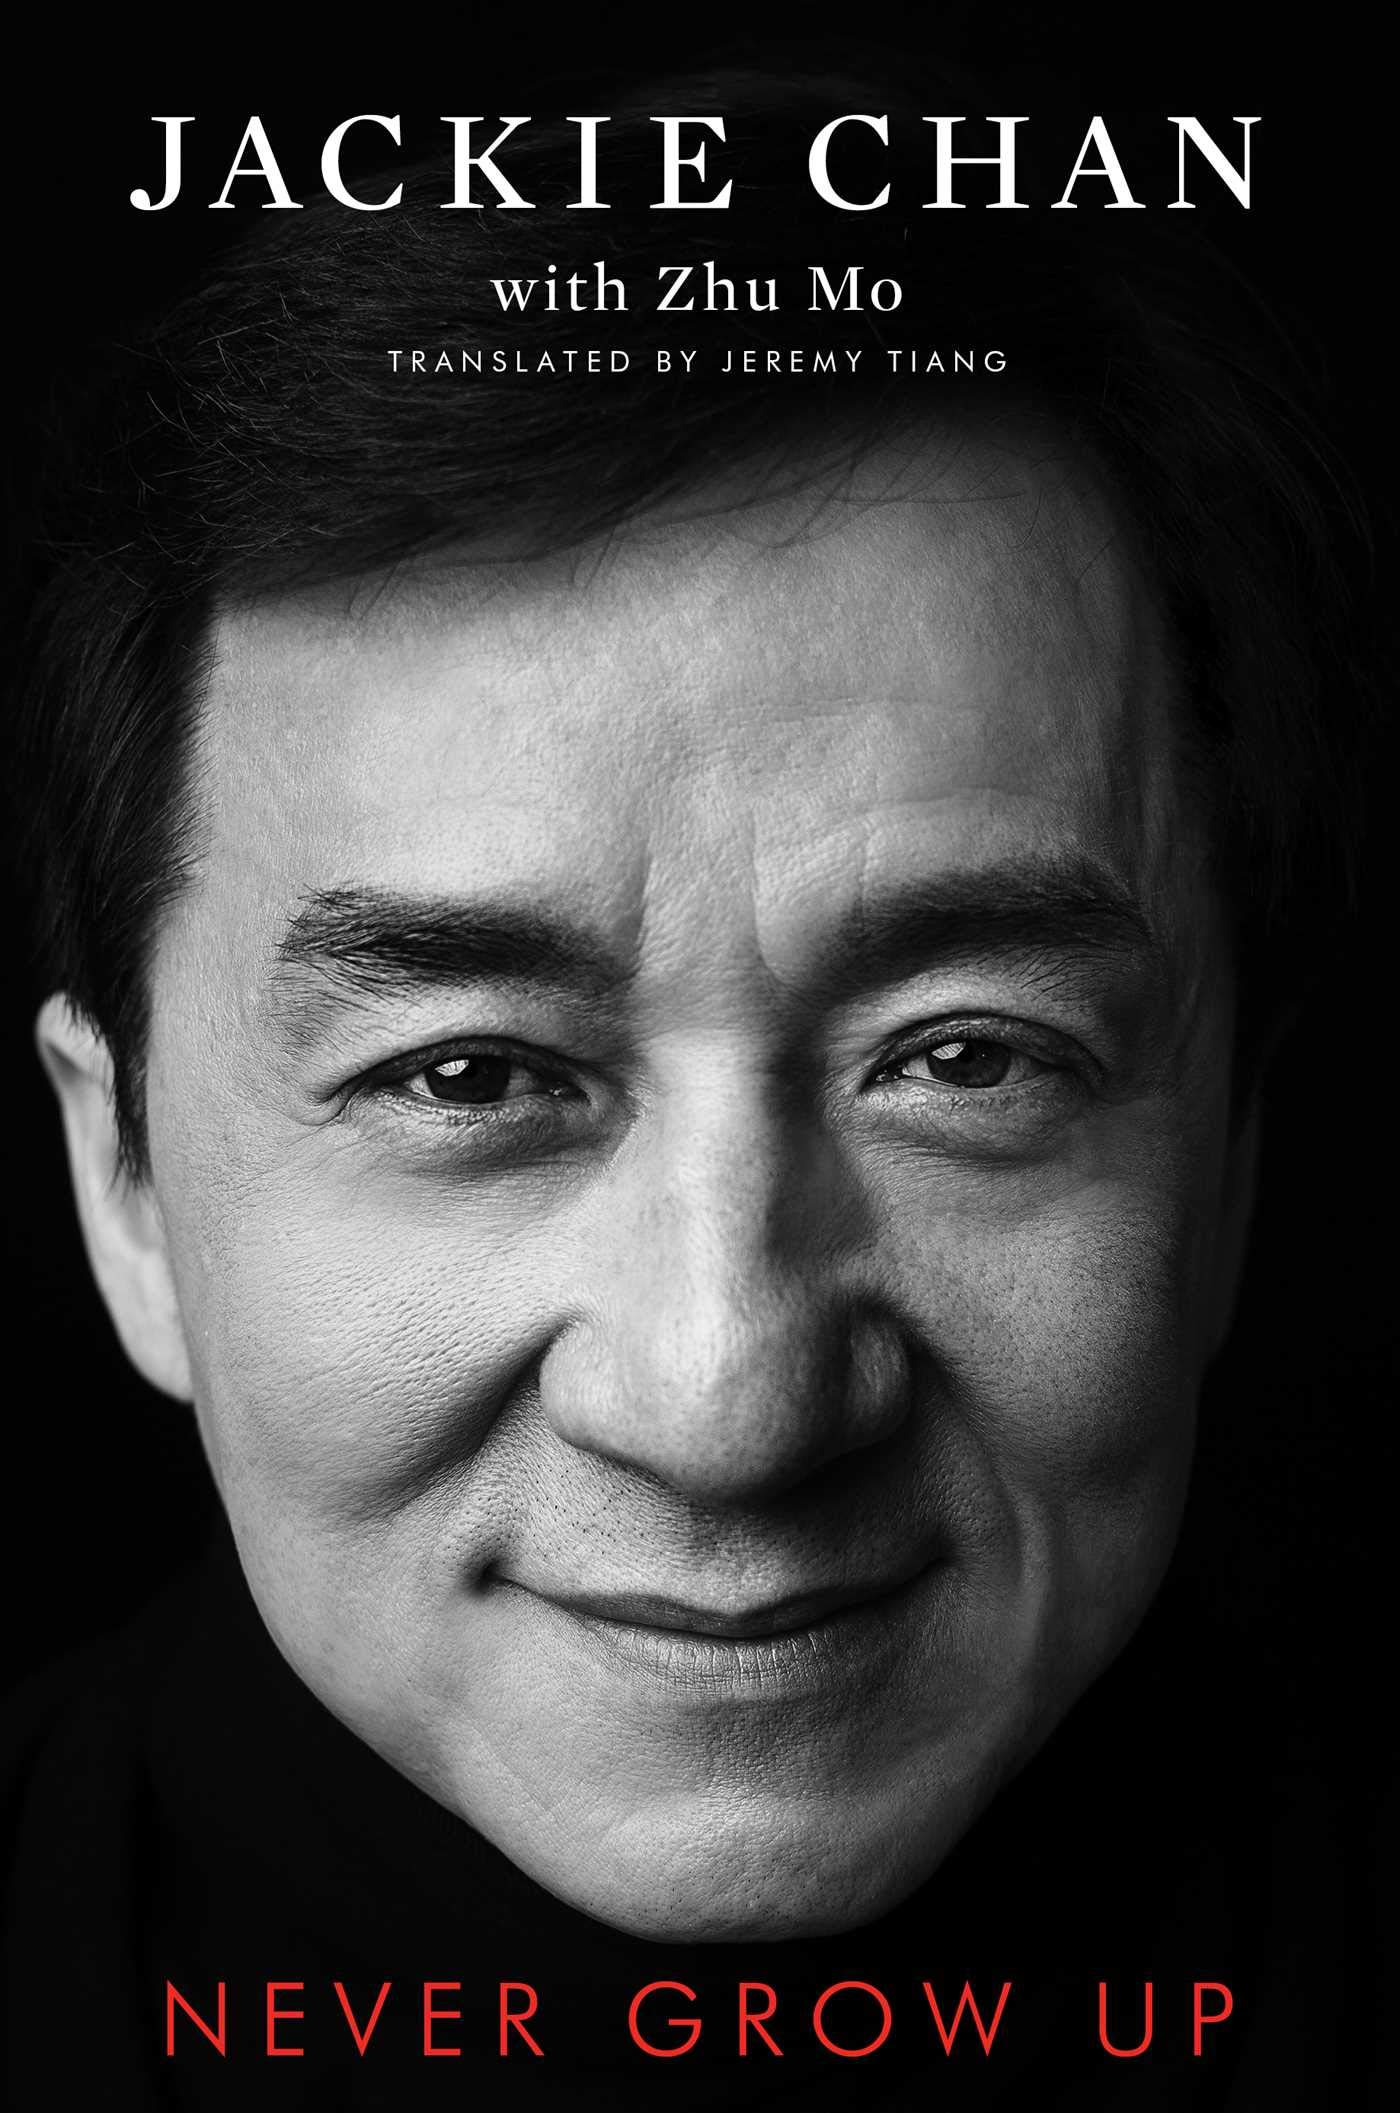 Image result for never grow up by jackie chan